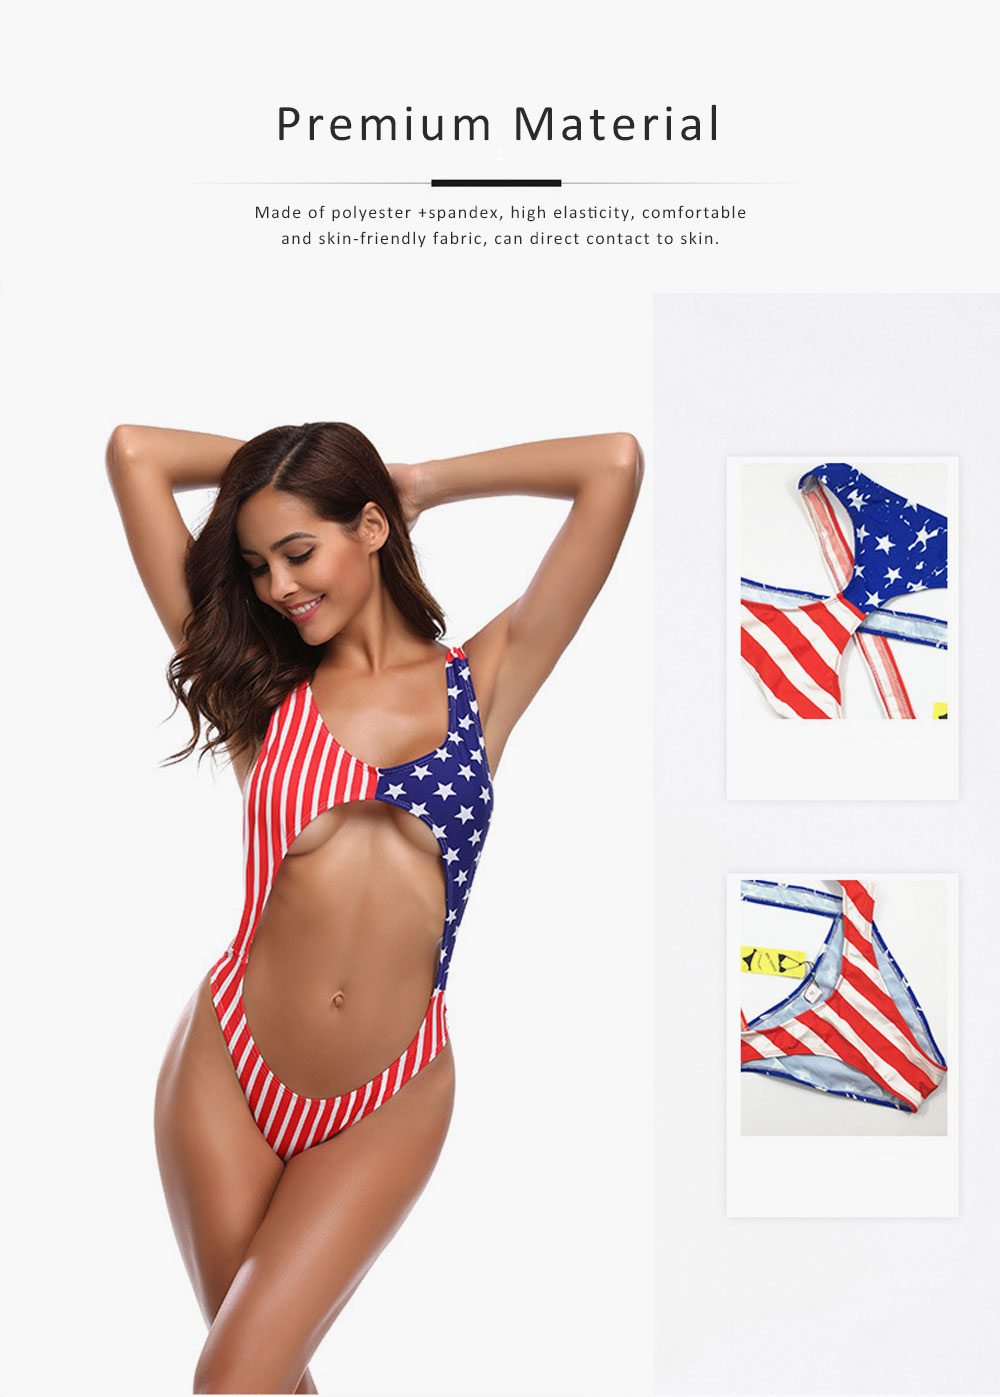 Womens Swimsuit V-Neck Sexy Bikini Backless American Flag One Piece High Waist Swimwear Bathing Suit 2